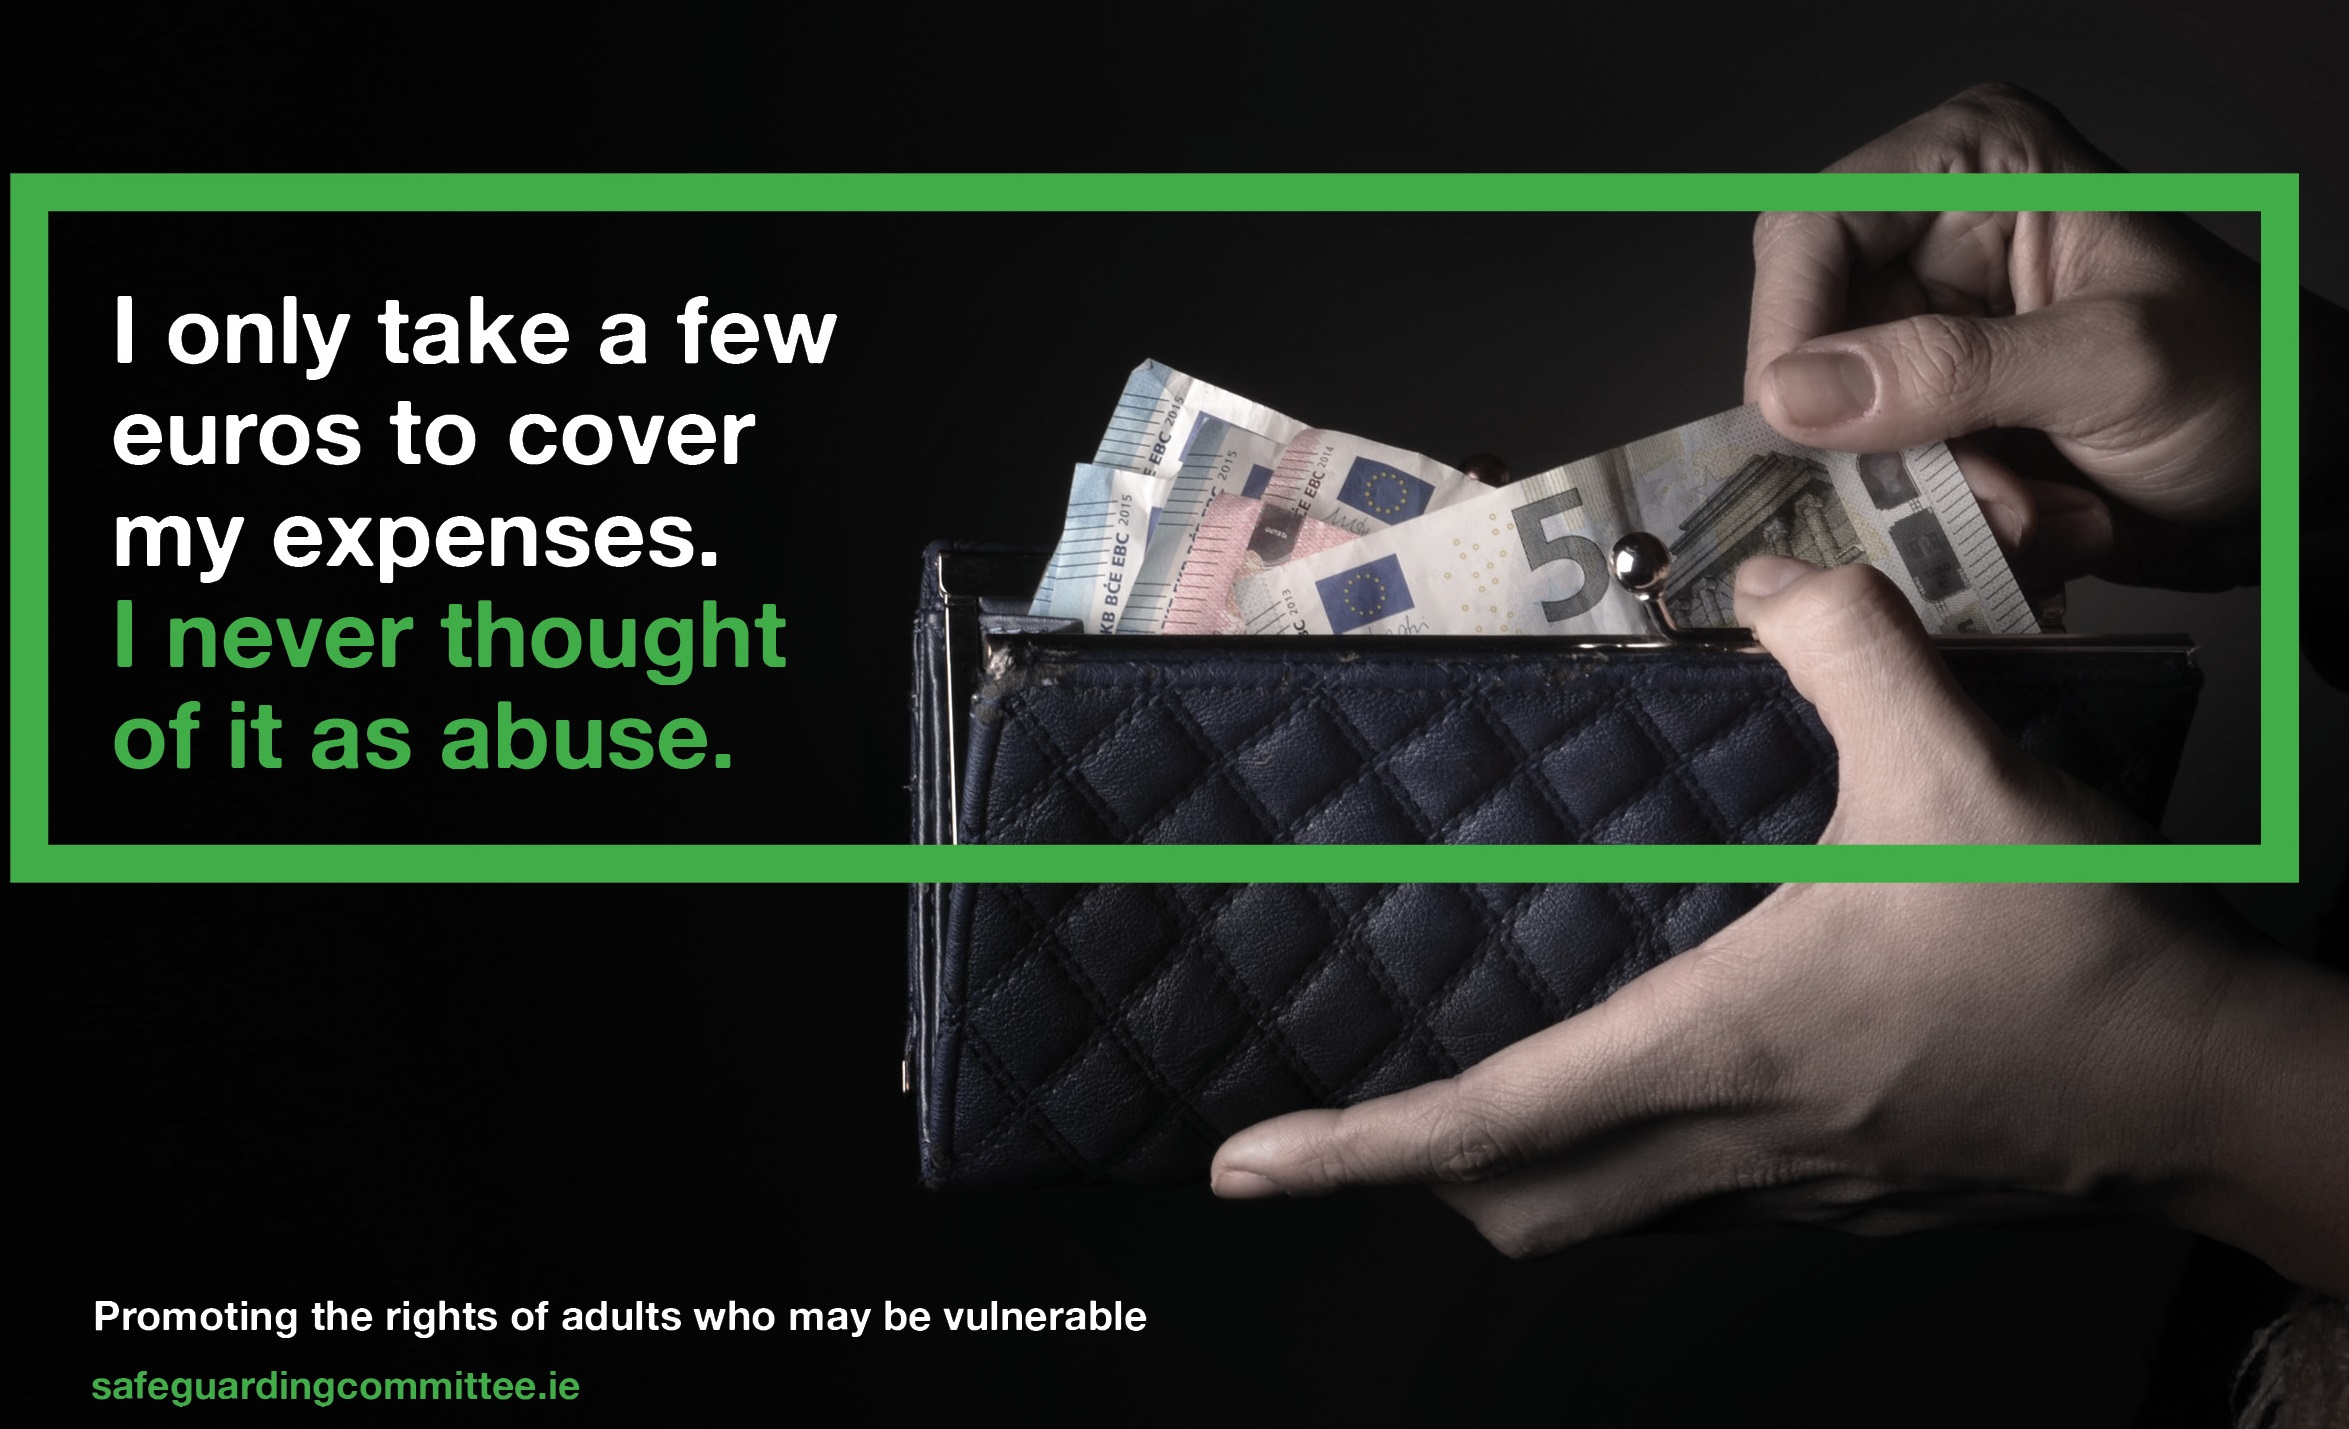 National Safeguarding Committee abuse campaign